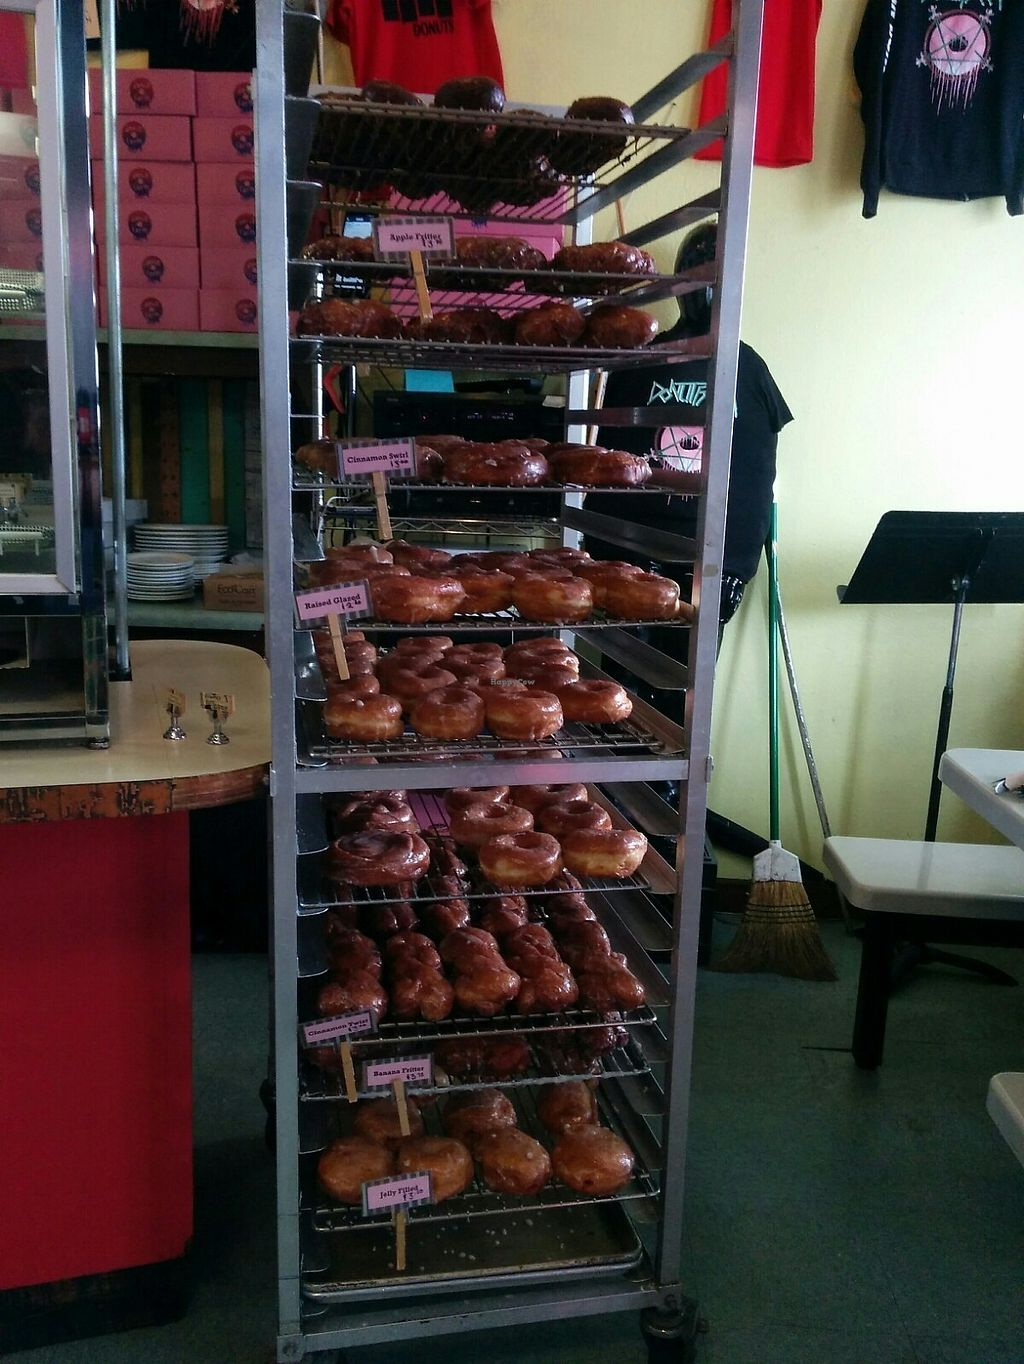 "Photo of Pepples Donut Farm  by <a href=""/members/profile/MizzB"">MizzB</a> <br/>Bringing in the day's glazed <br/> July 1, 2017  - <a href='/contact/abuse/image/24634/275726'>Report</a>"